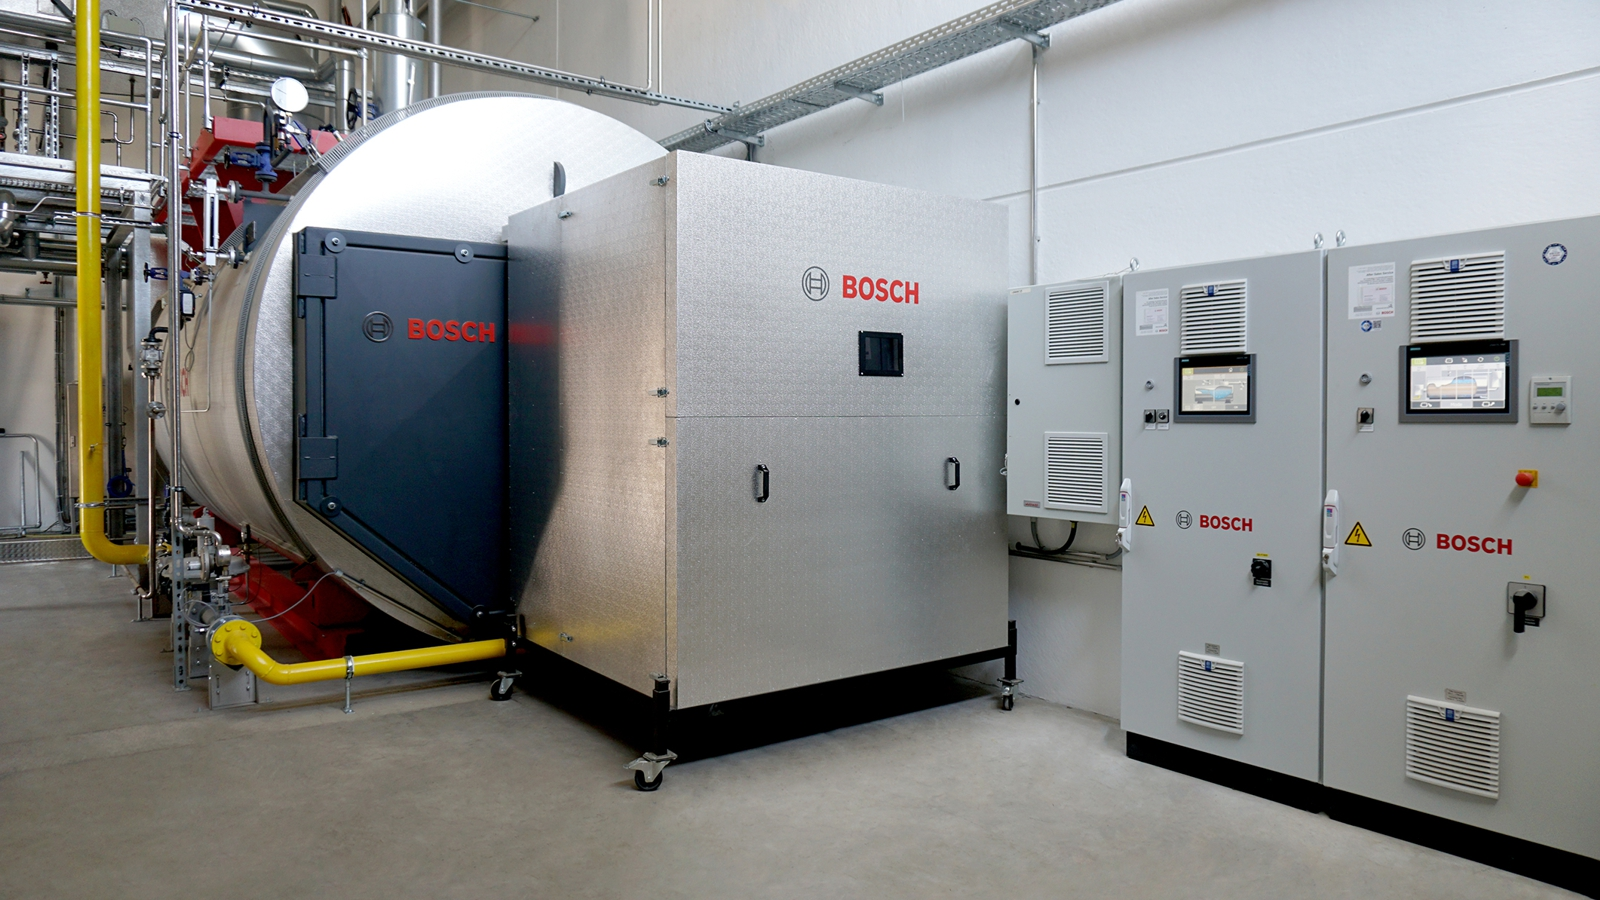 Bosch boiler technology reduces CO2 emissions by 15 percent